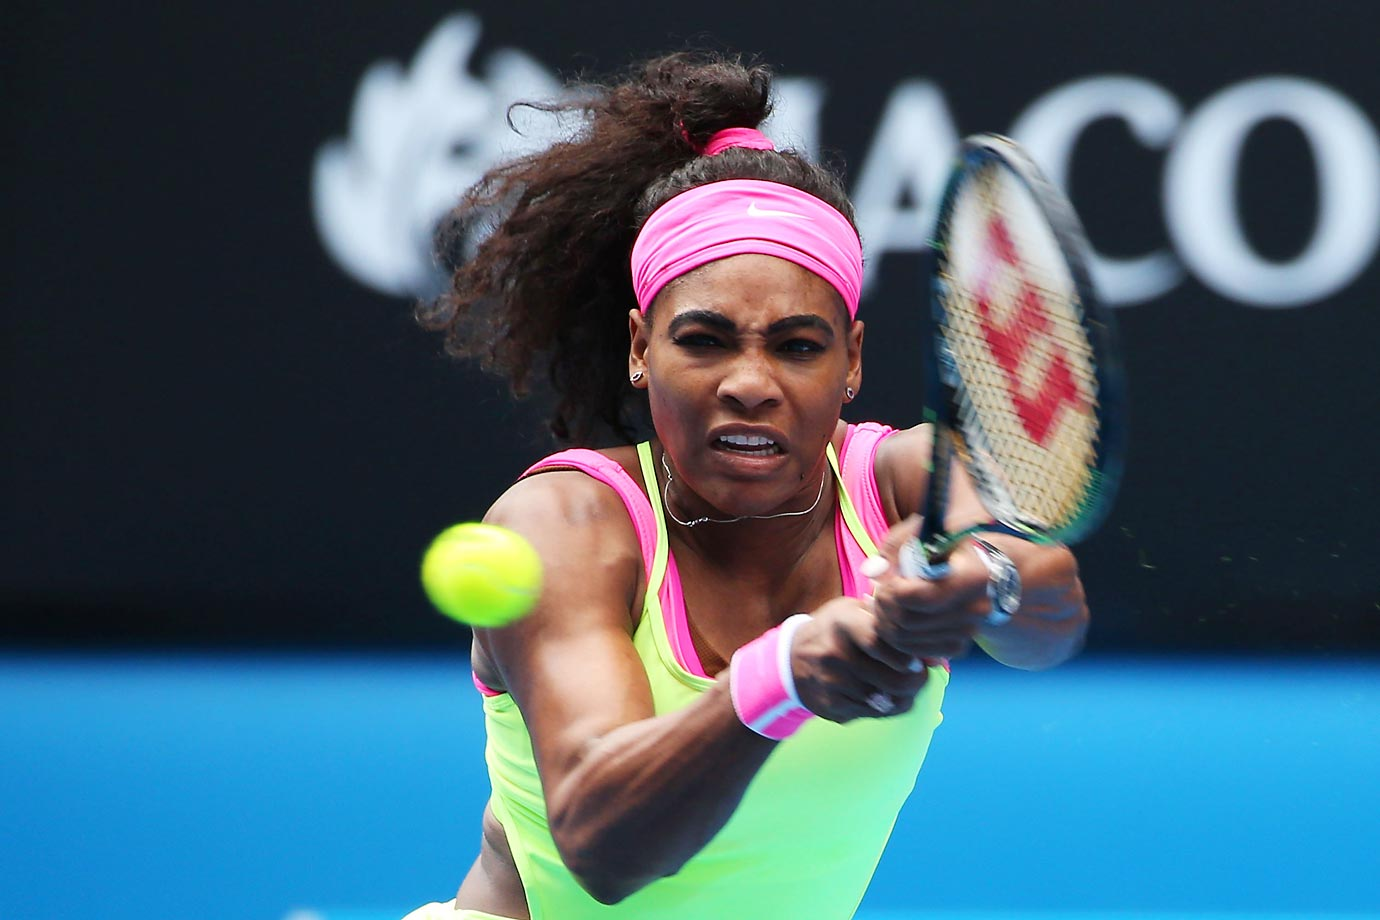 Serena Williams plays a backhand in her semifinal victory over Madison Keys in the Australian Open.